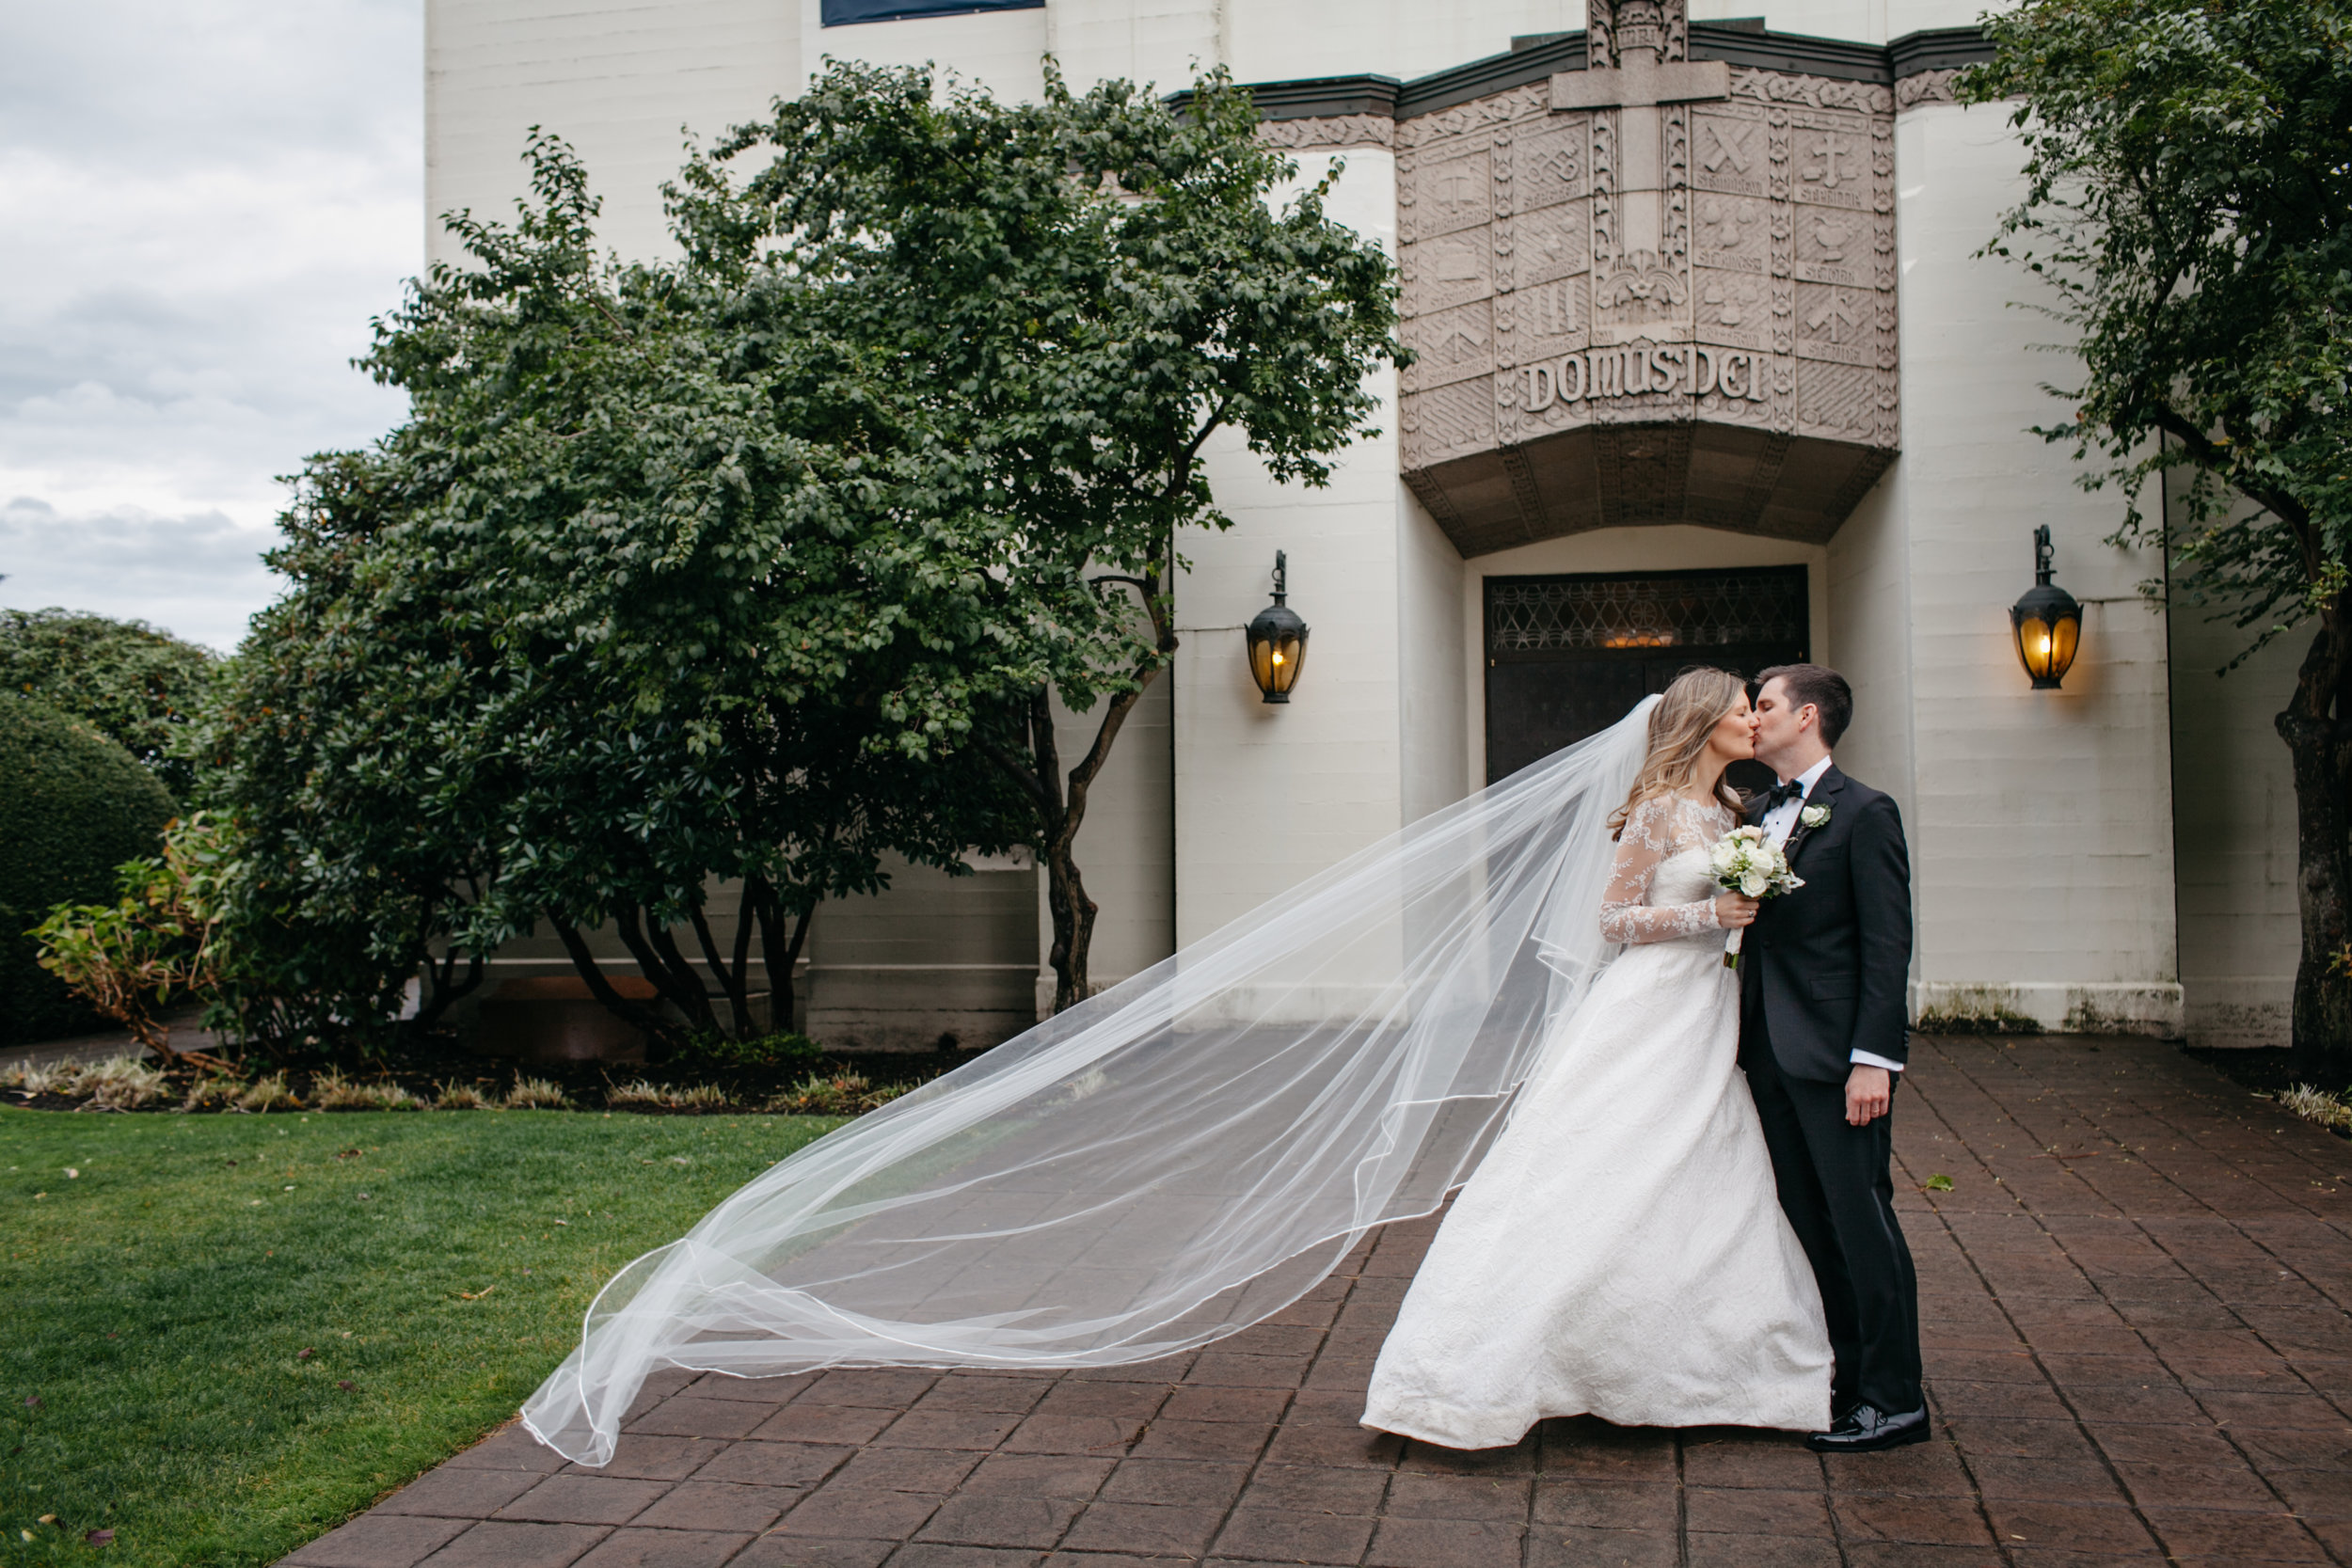 Bridalbliss.com | Seattle Wedding | Washington Event Coordination and Design | Kate Price Photography